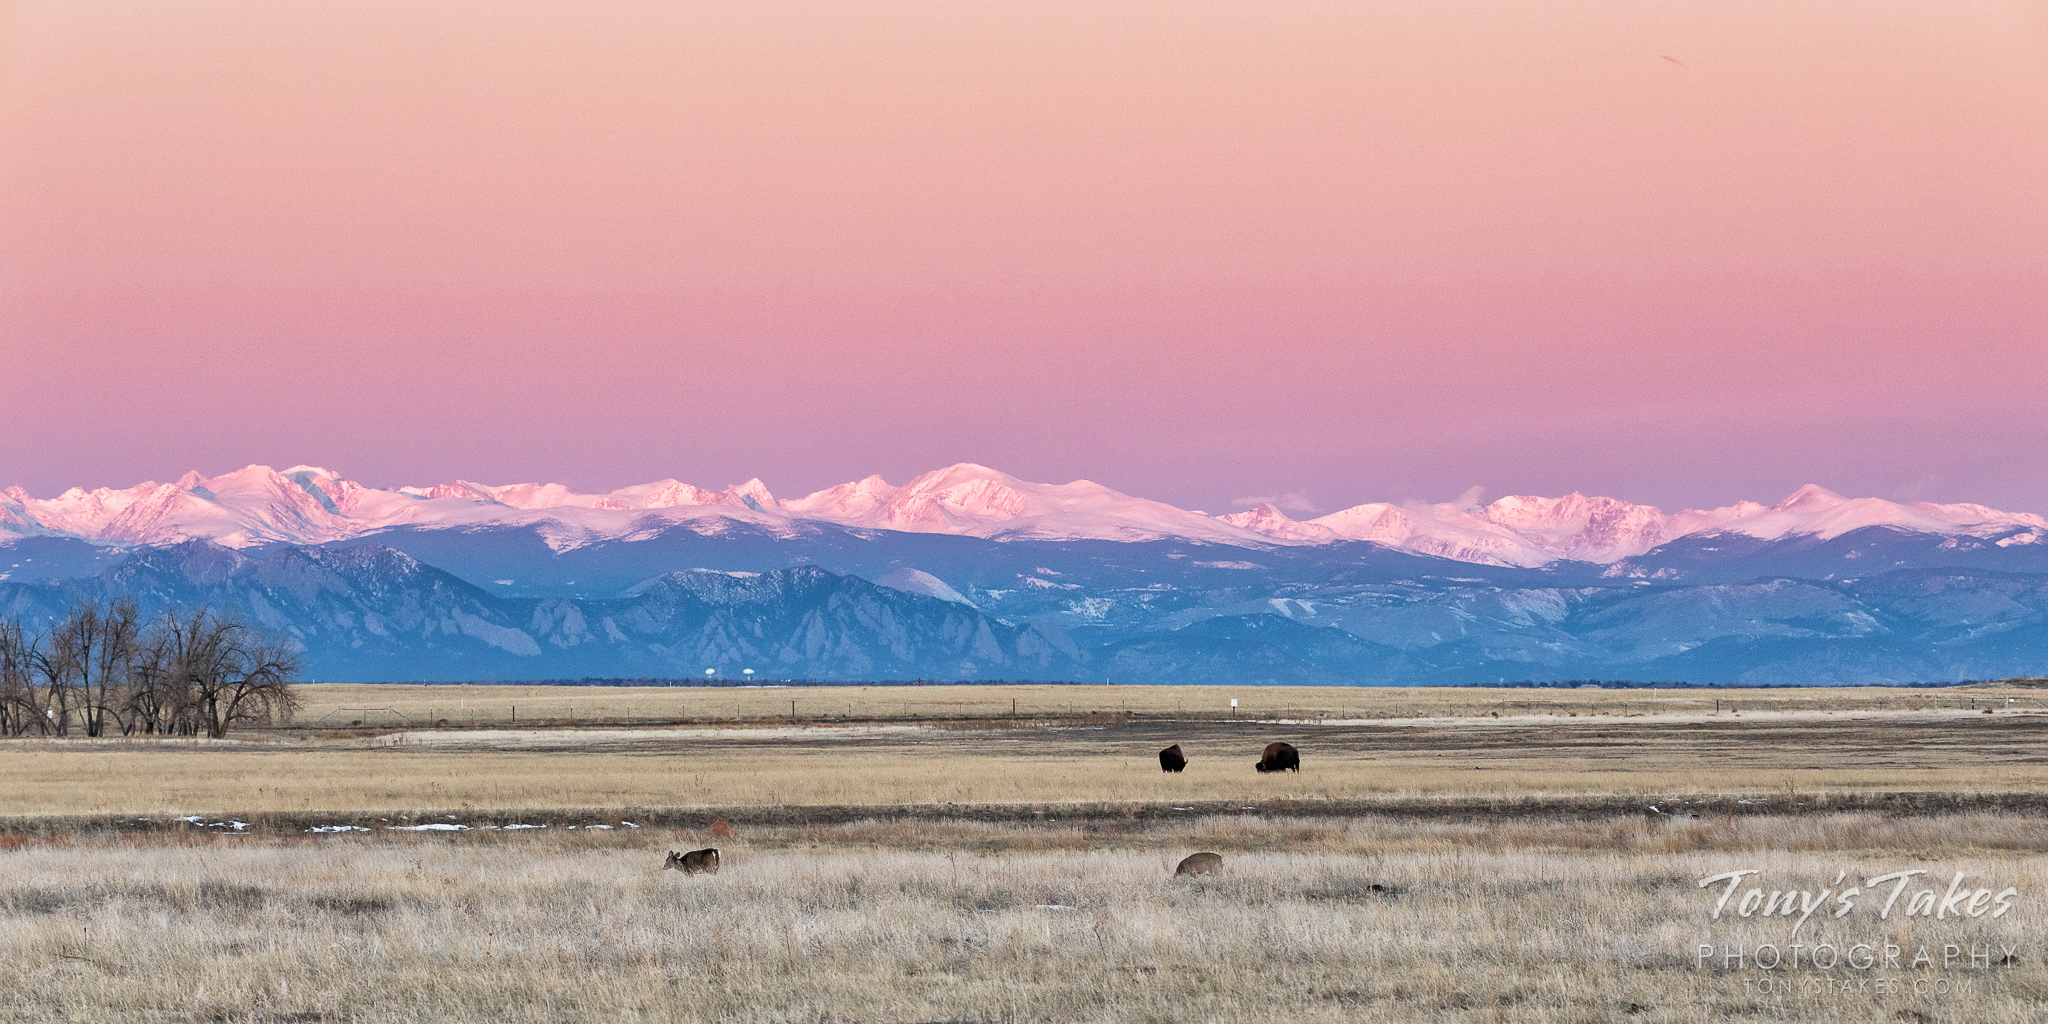 Bison and deer graze on the plains while the early morning sun creates a beautiful alpenglow on the mountains. (© Tony's Takes)